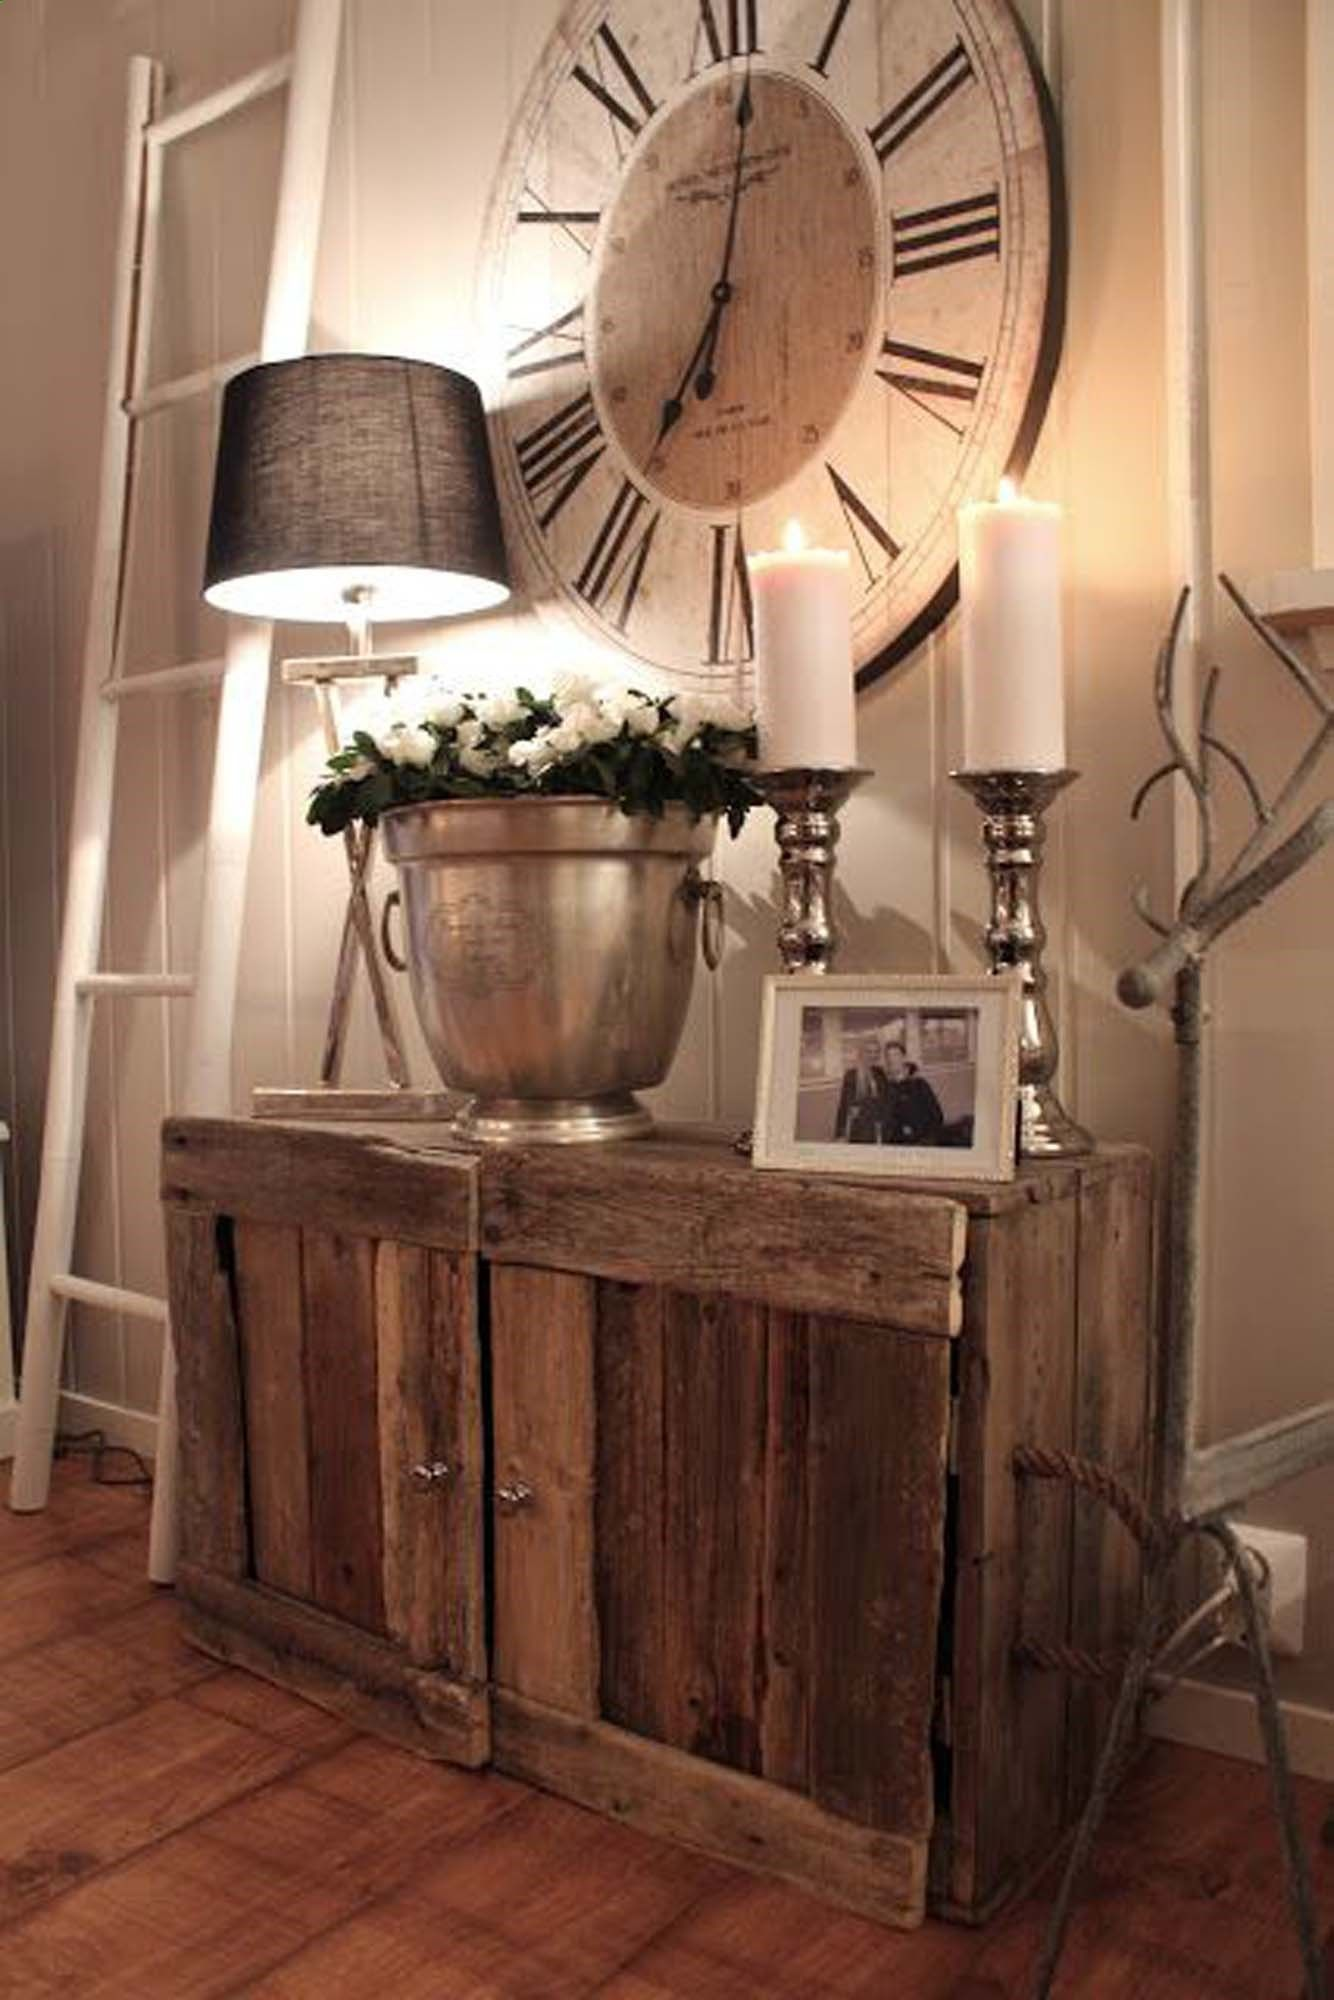 This Is Fabulous The Rustic Cabinet And The Huge Clock Love It Ive Been Eyeing The Oversized Clock For Awhile Now To Just Fi Home Decor Rustic House Decor #rustic #cabinets #for #living #room